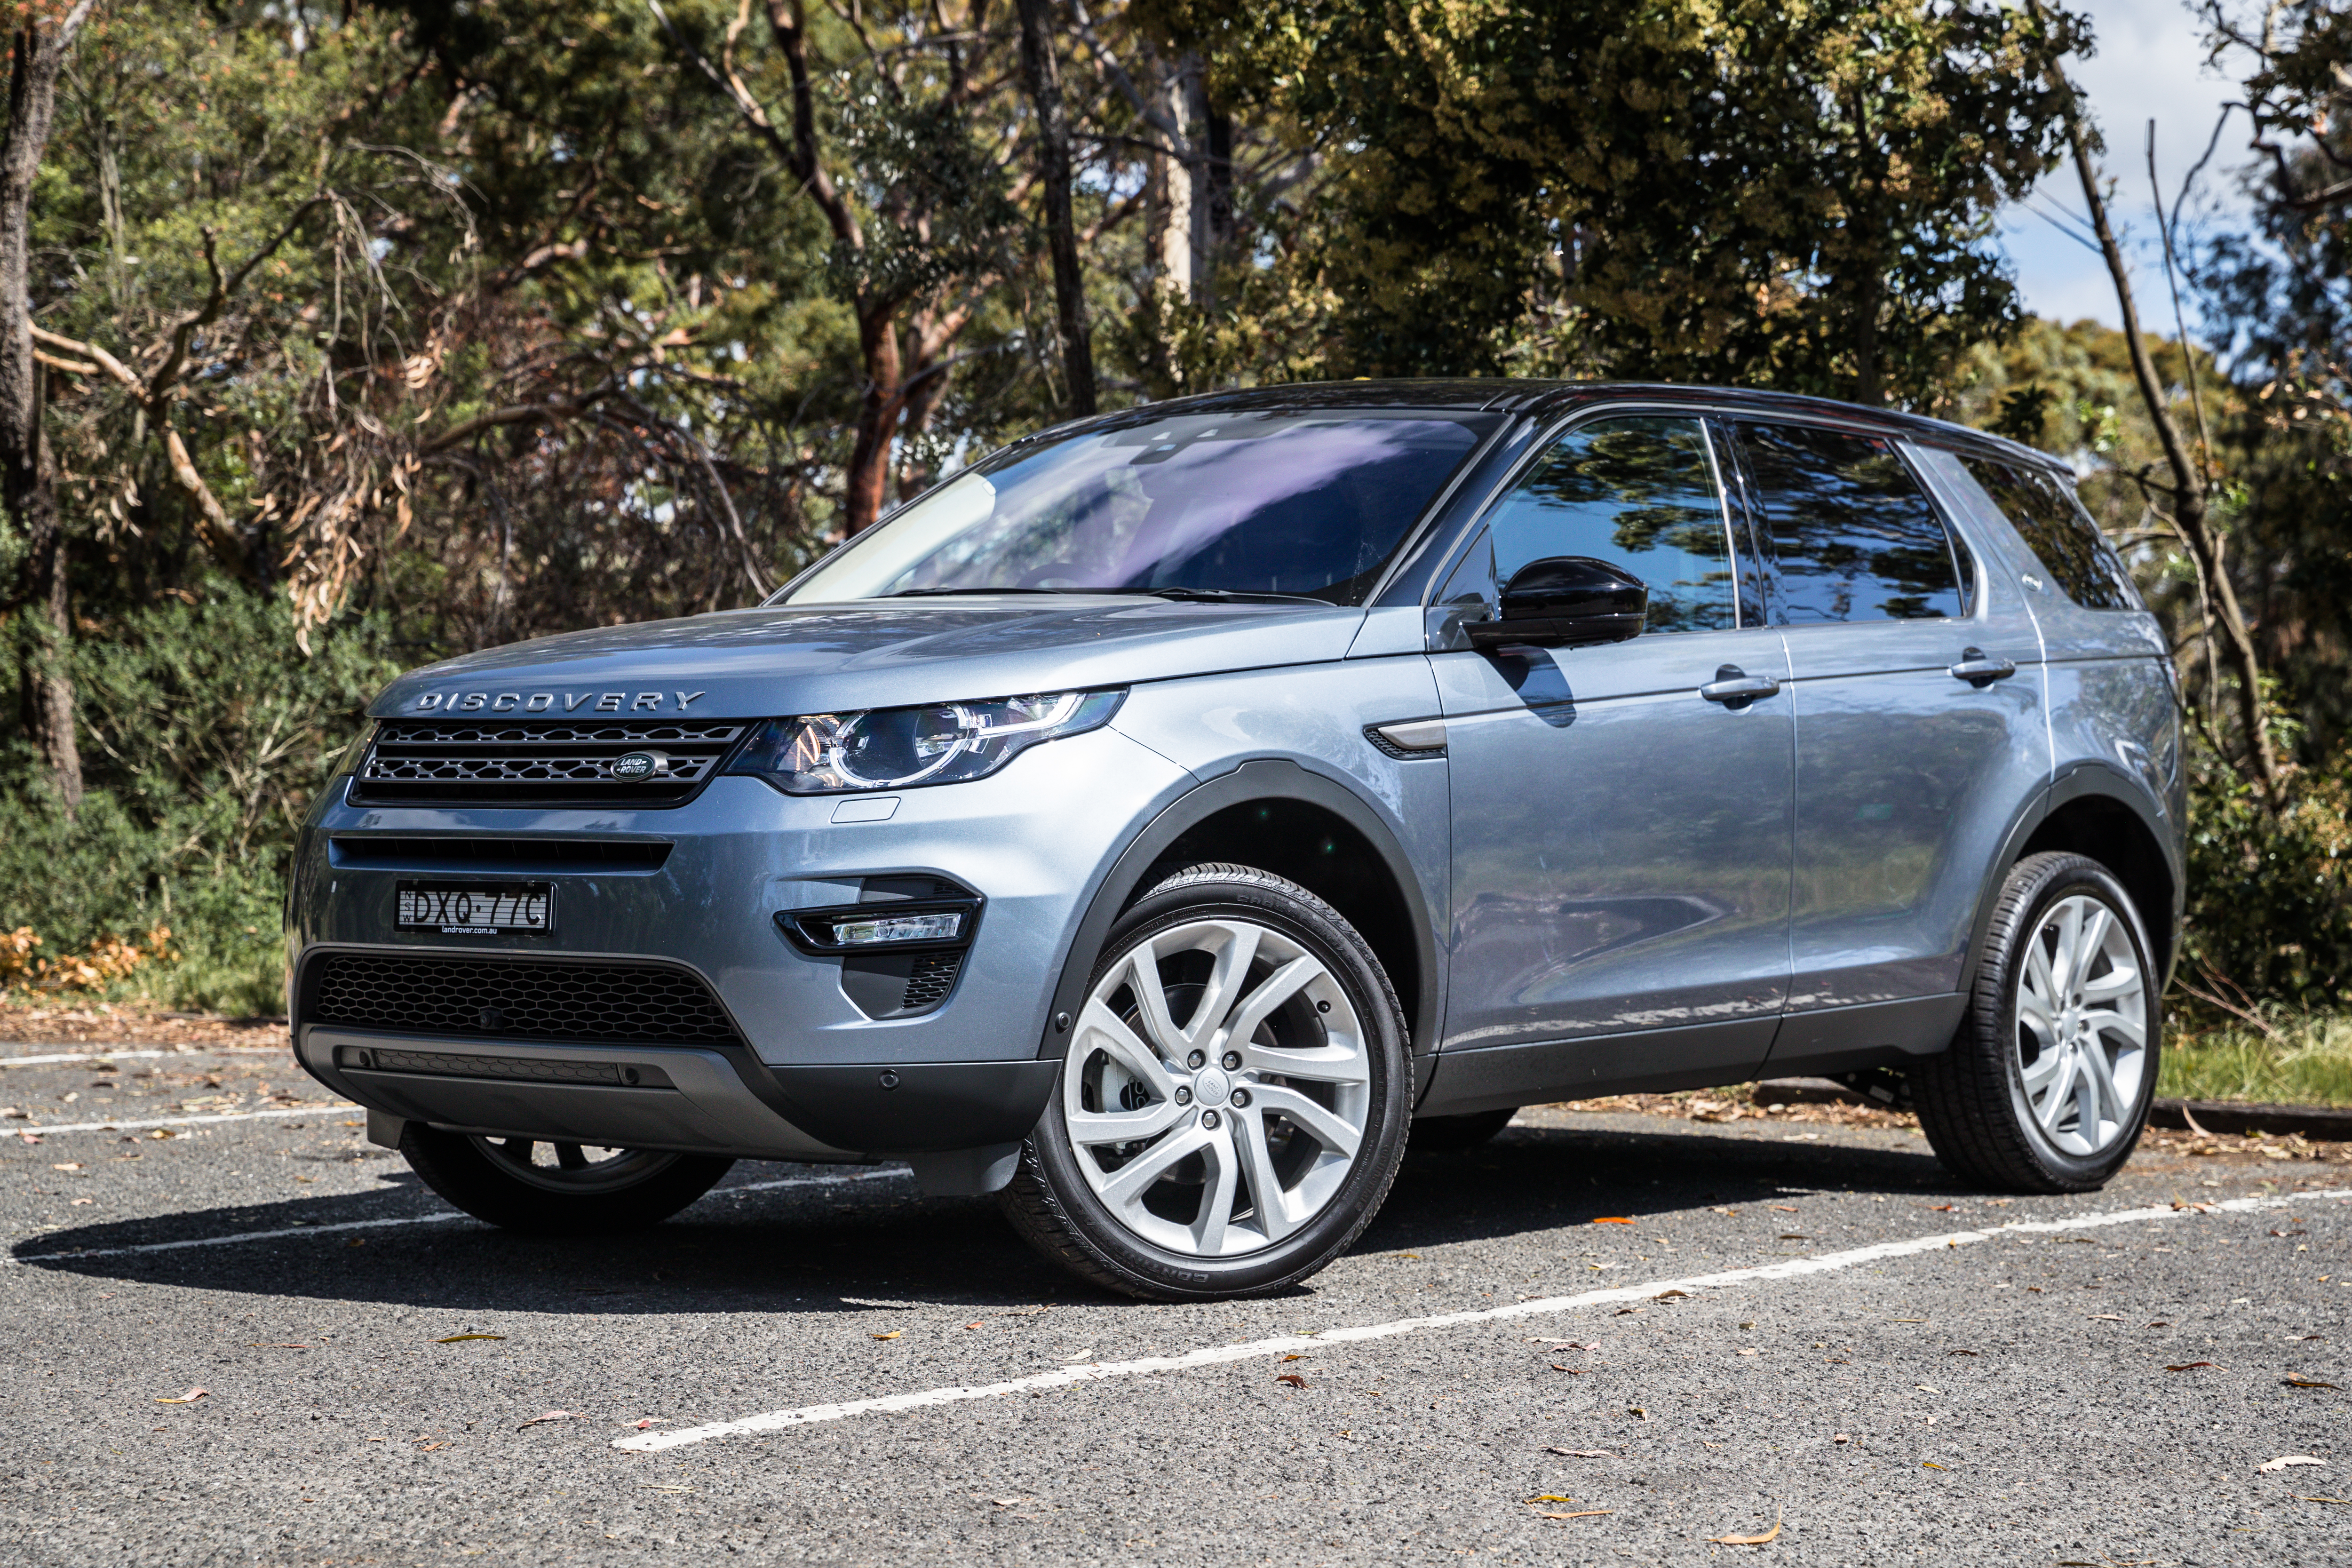 2019 Jeep Cherokee Trailhawk v Land Rover Discovery Sport